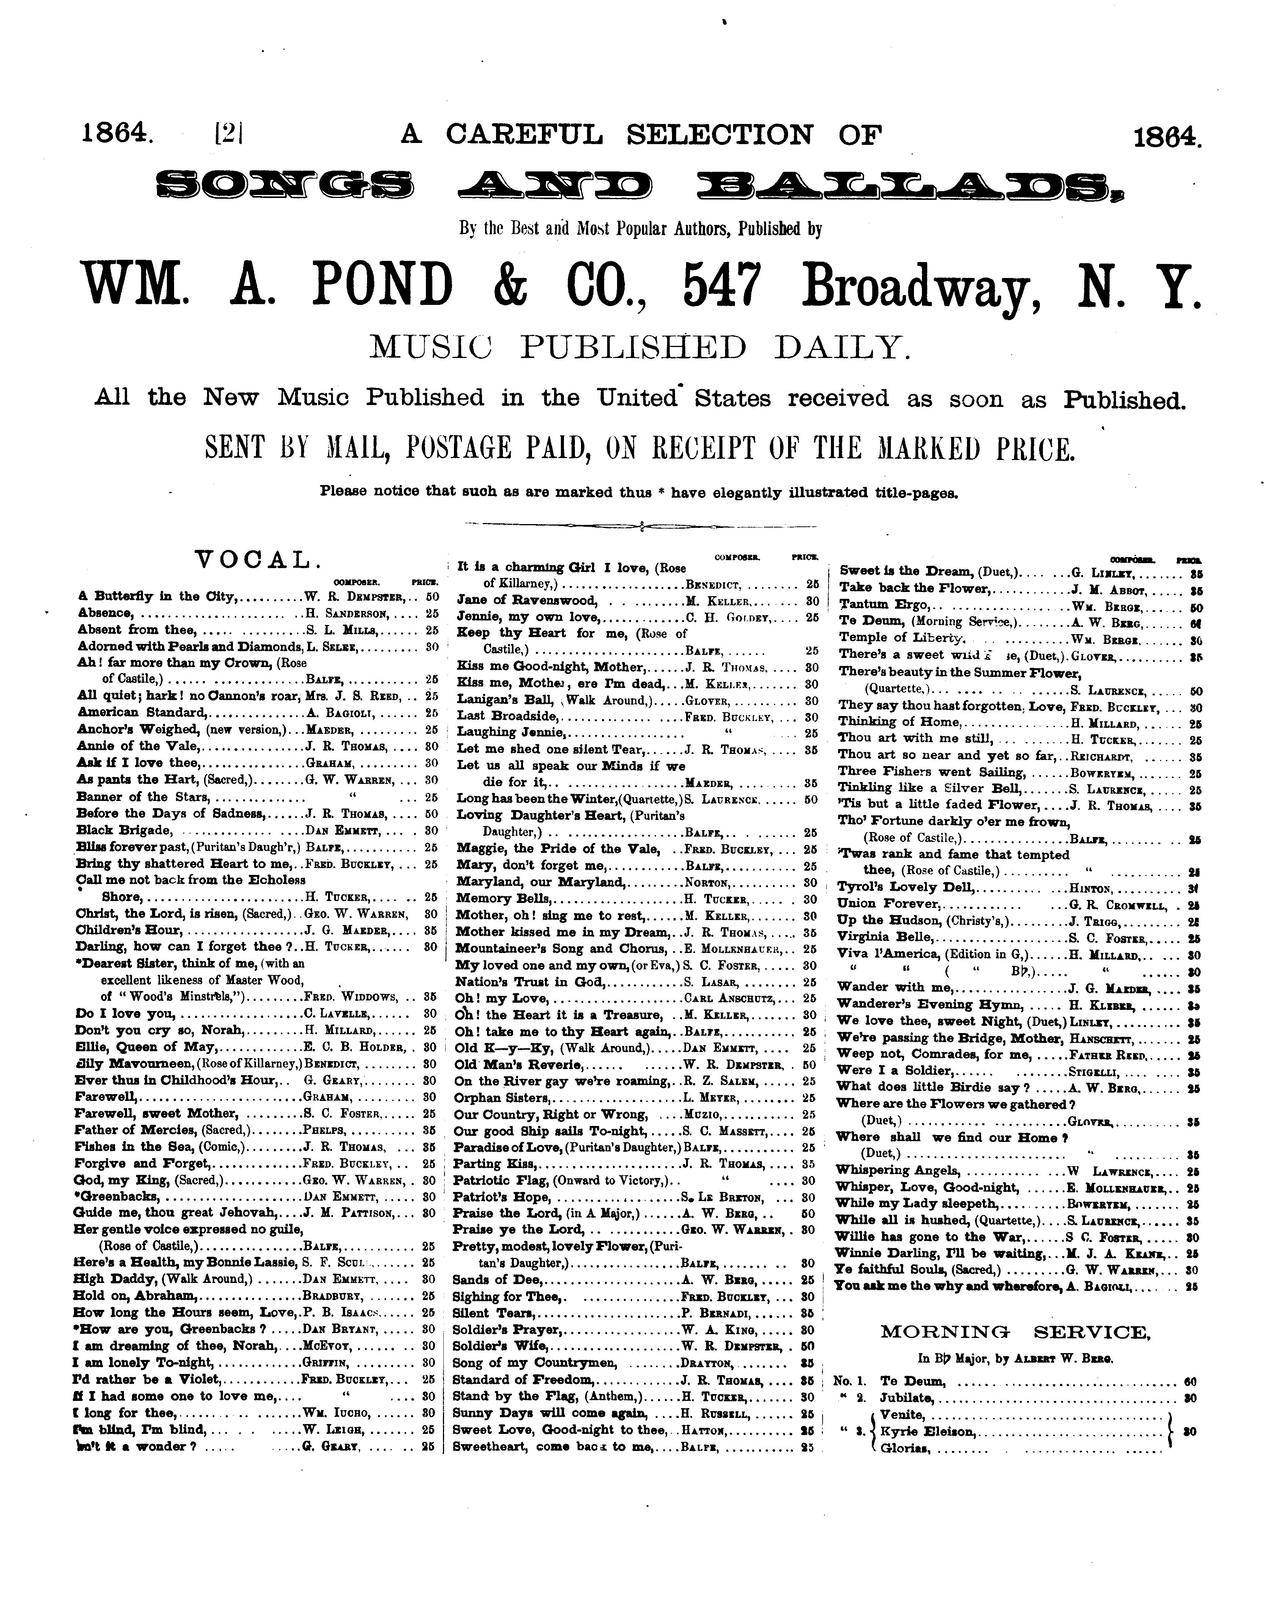 U.S.G.: a song for the times; first produced at Bryant's Minstrels, New York, and sung by the whole nation words and music by Dan D. Emmett, author of Dixie's land, High daddy, etc. etc.